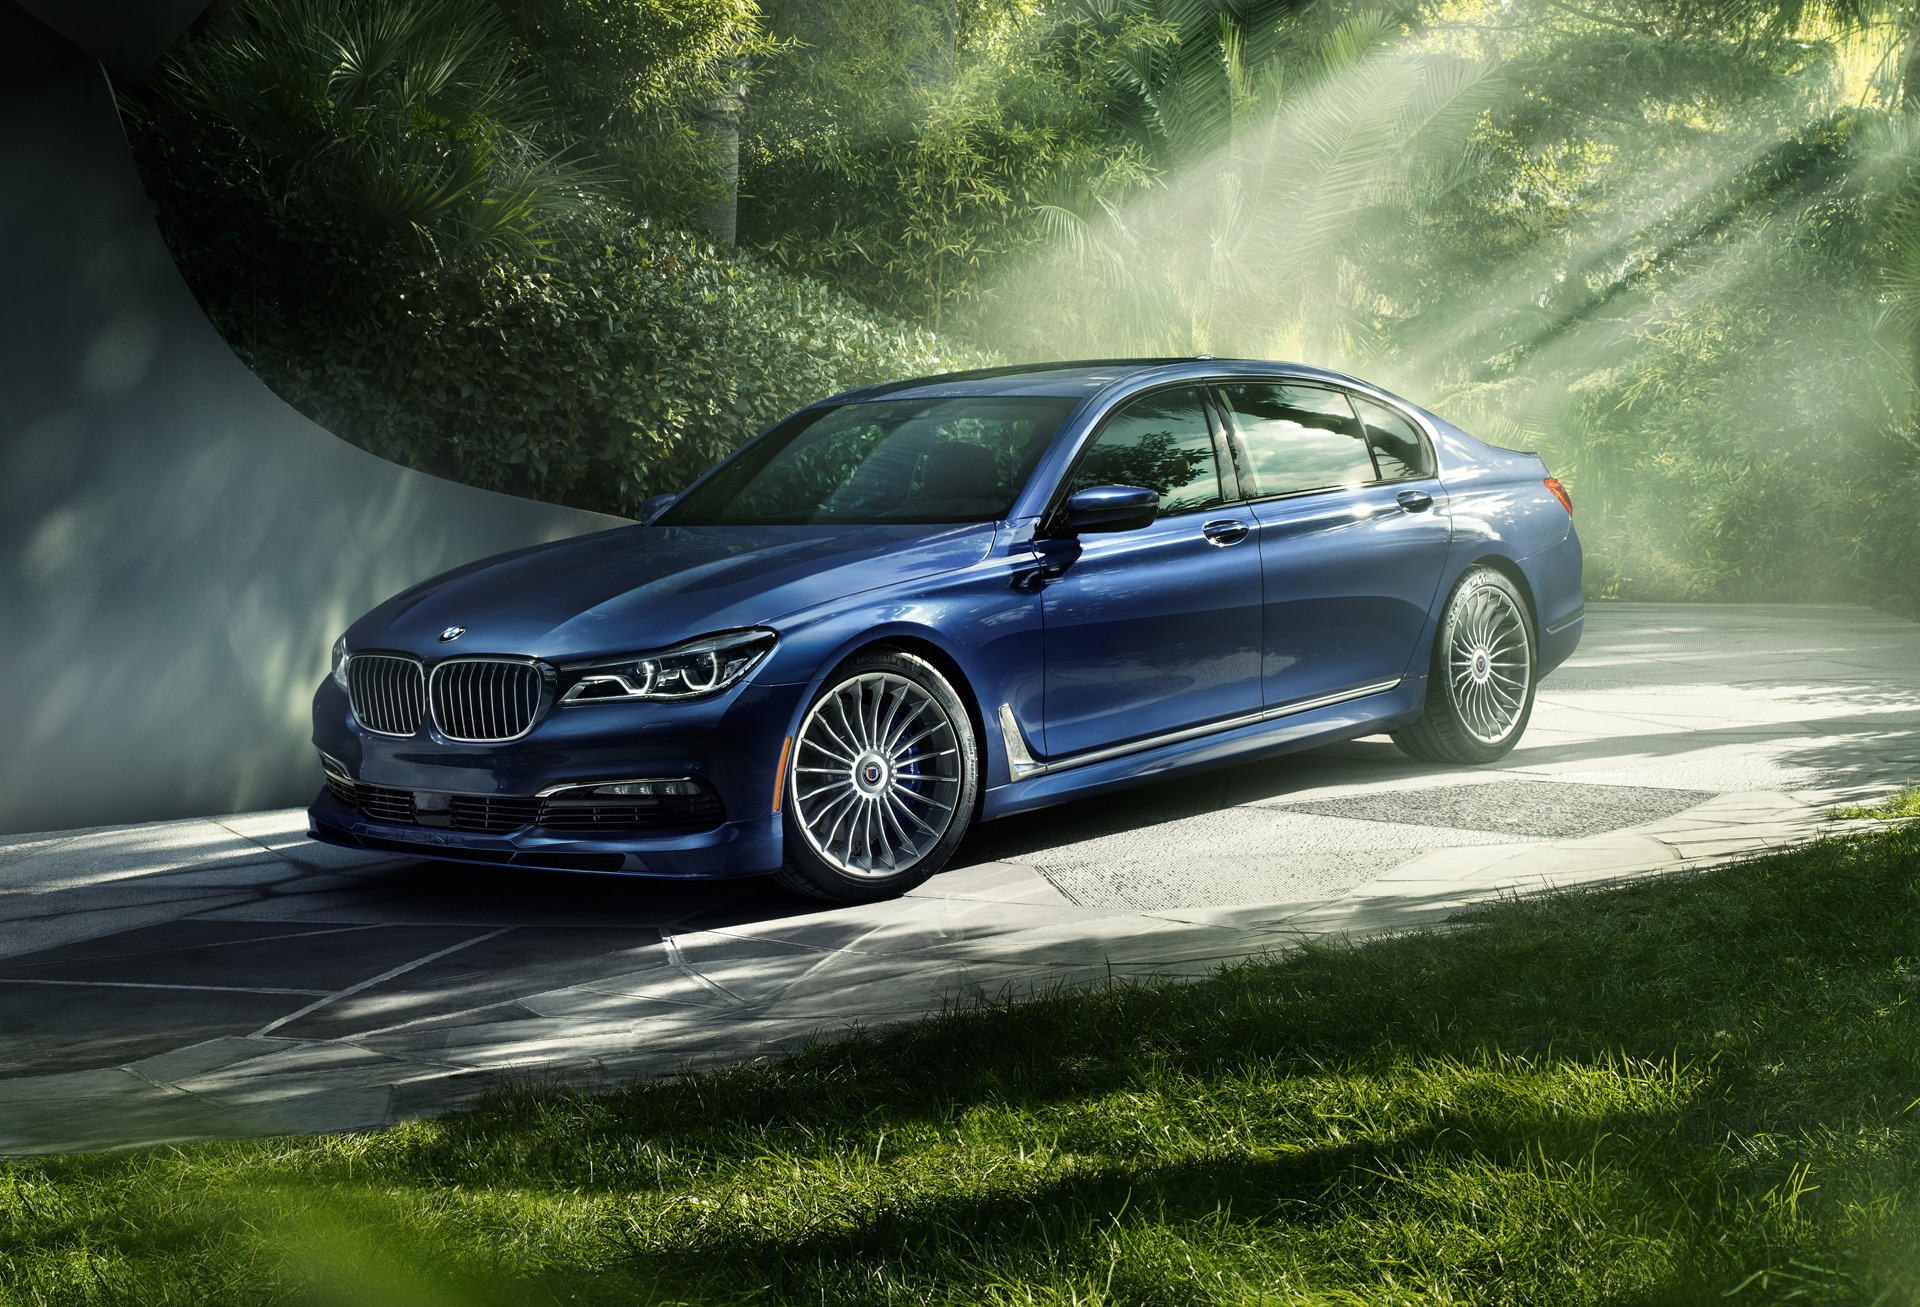 2017 bmw alpina b7 xdrive revealed with 600 horsepower. Black Bedroom Furniture Sets. Home Design Ideas